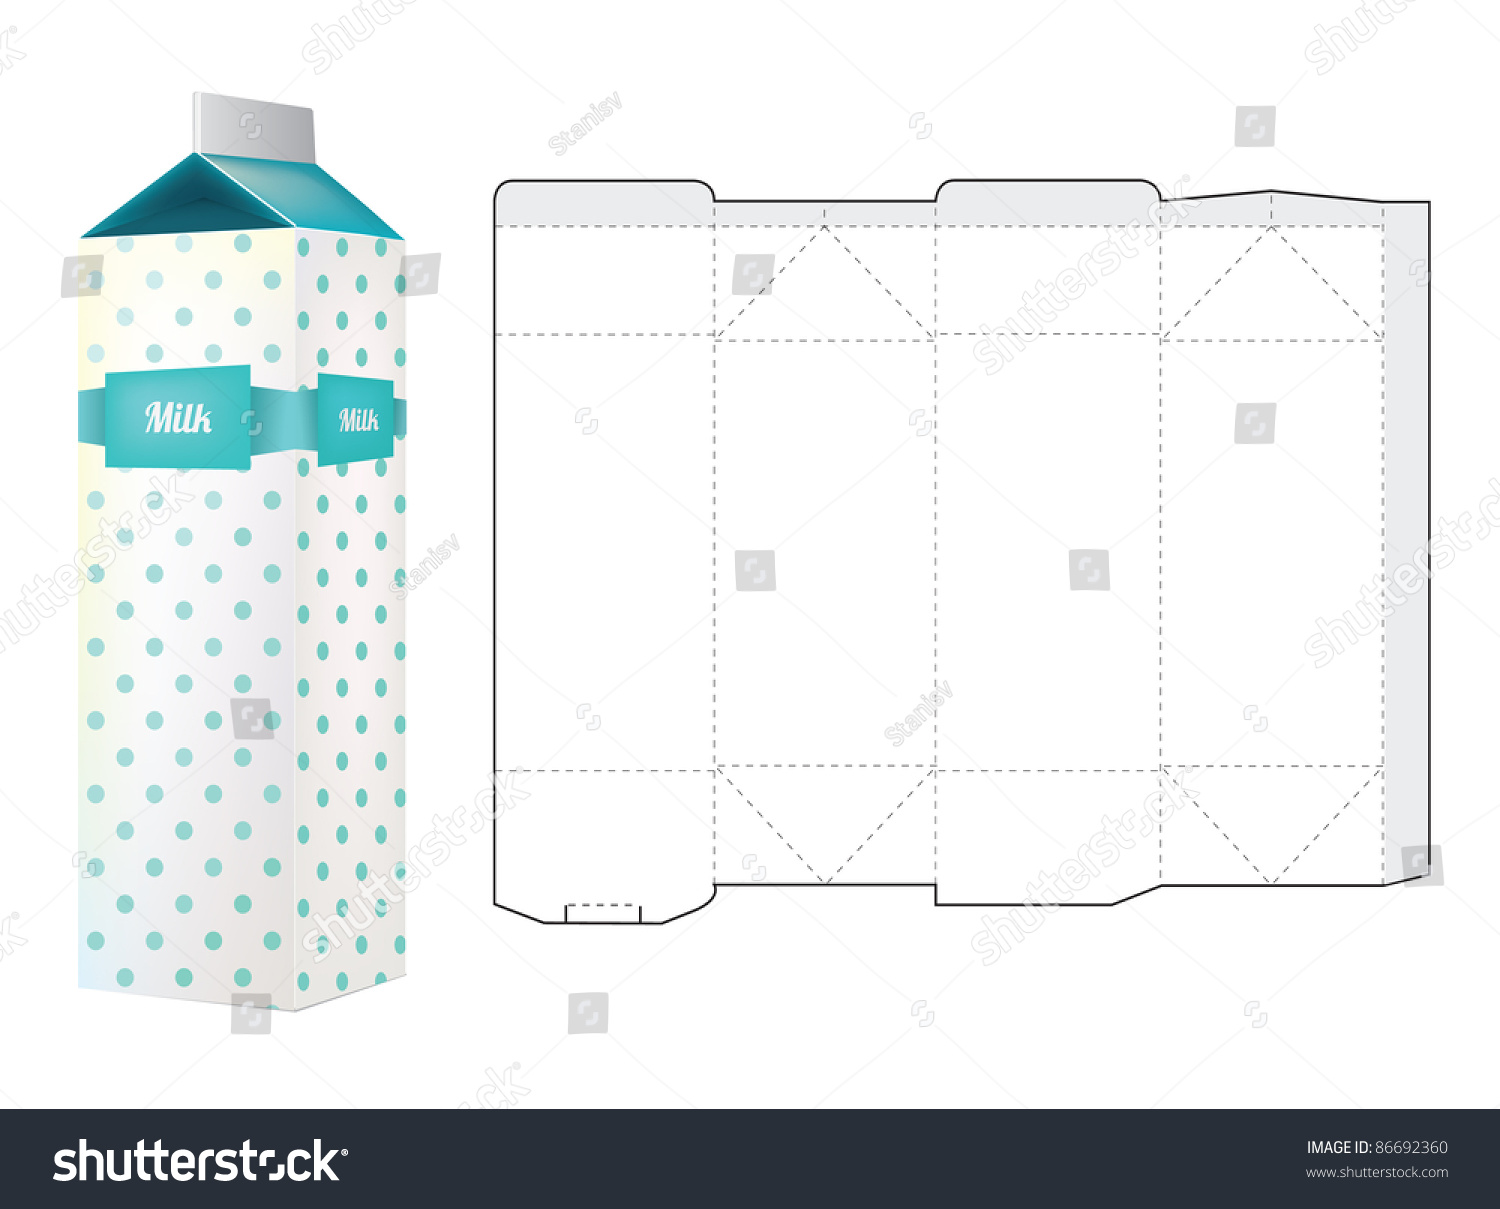 Milk carton template – clipart.